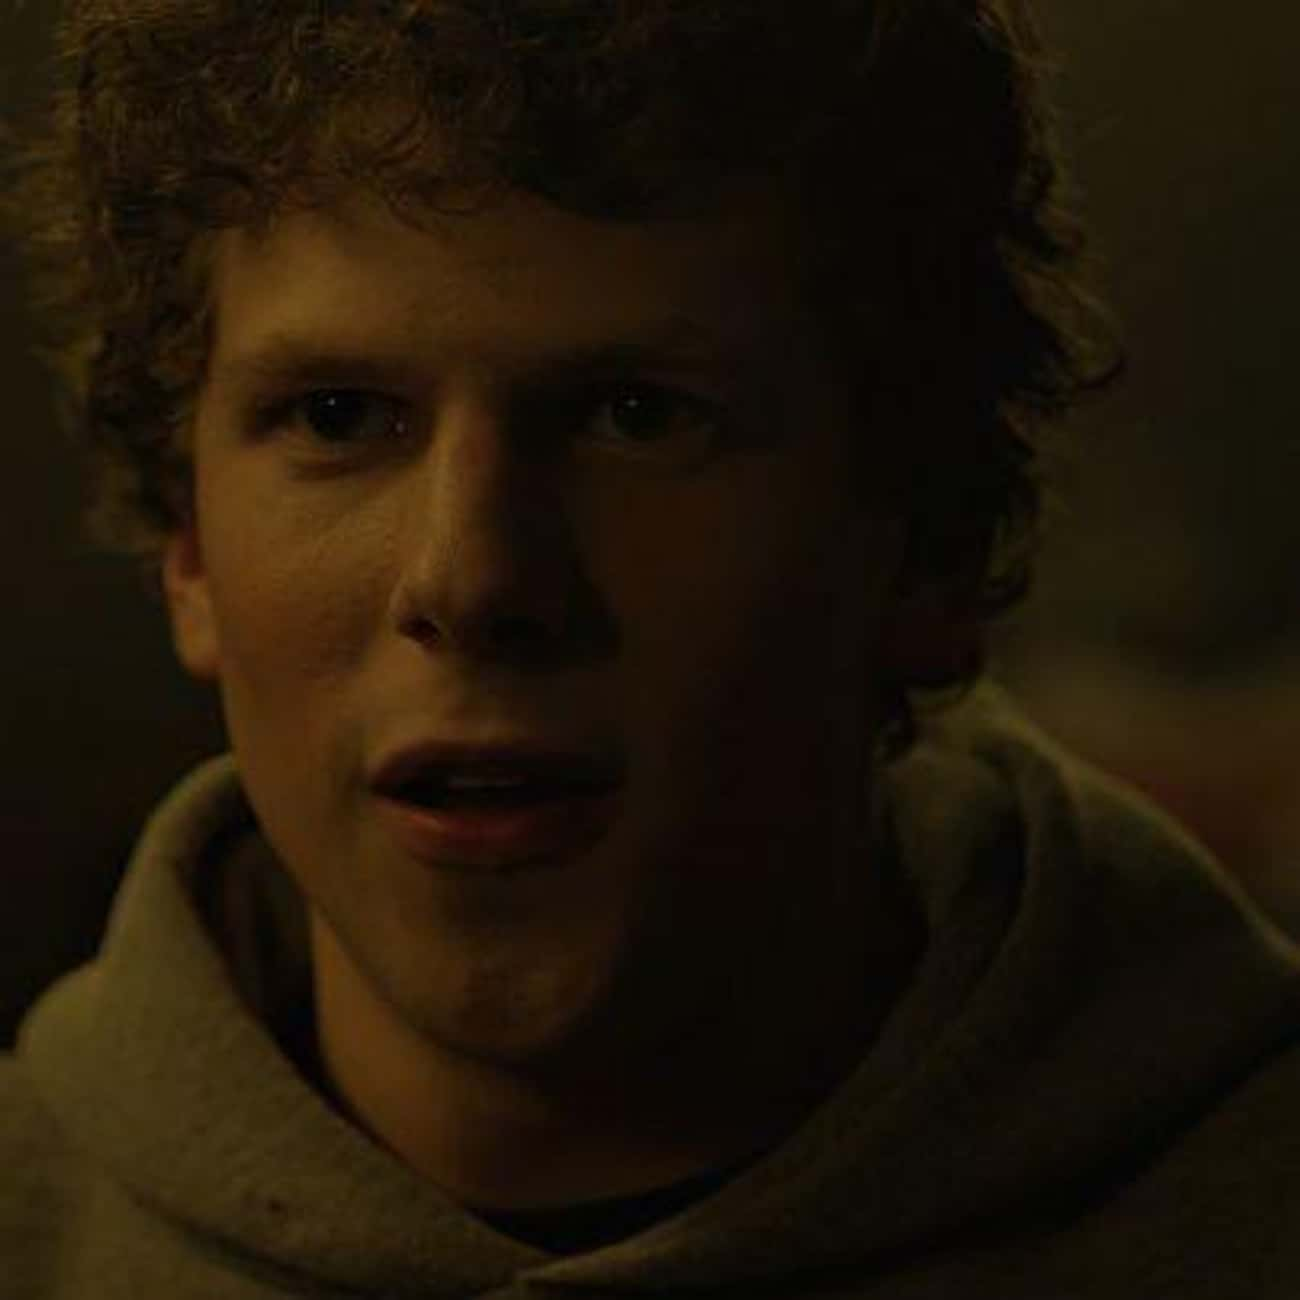 Builds A Chair is listed (or ranked) 3 on the list The Most Memorable Quotes From 'The Social Network'